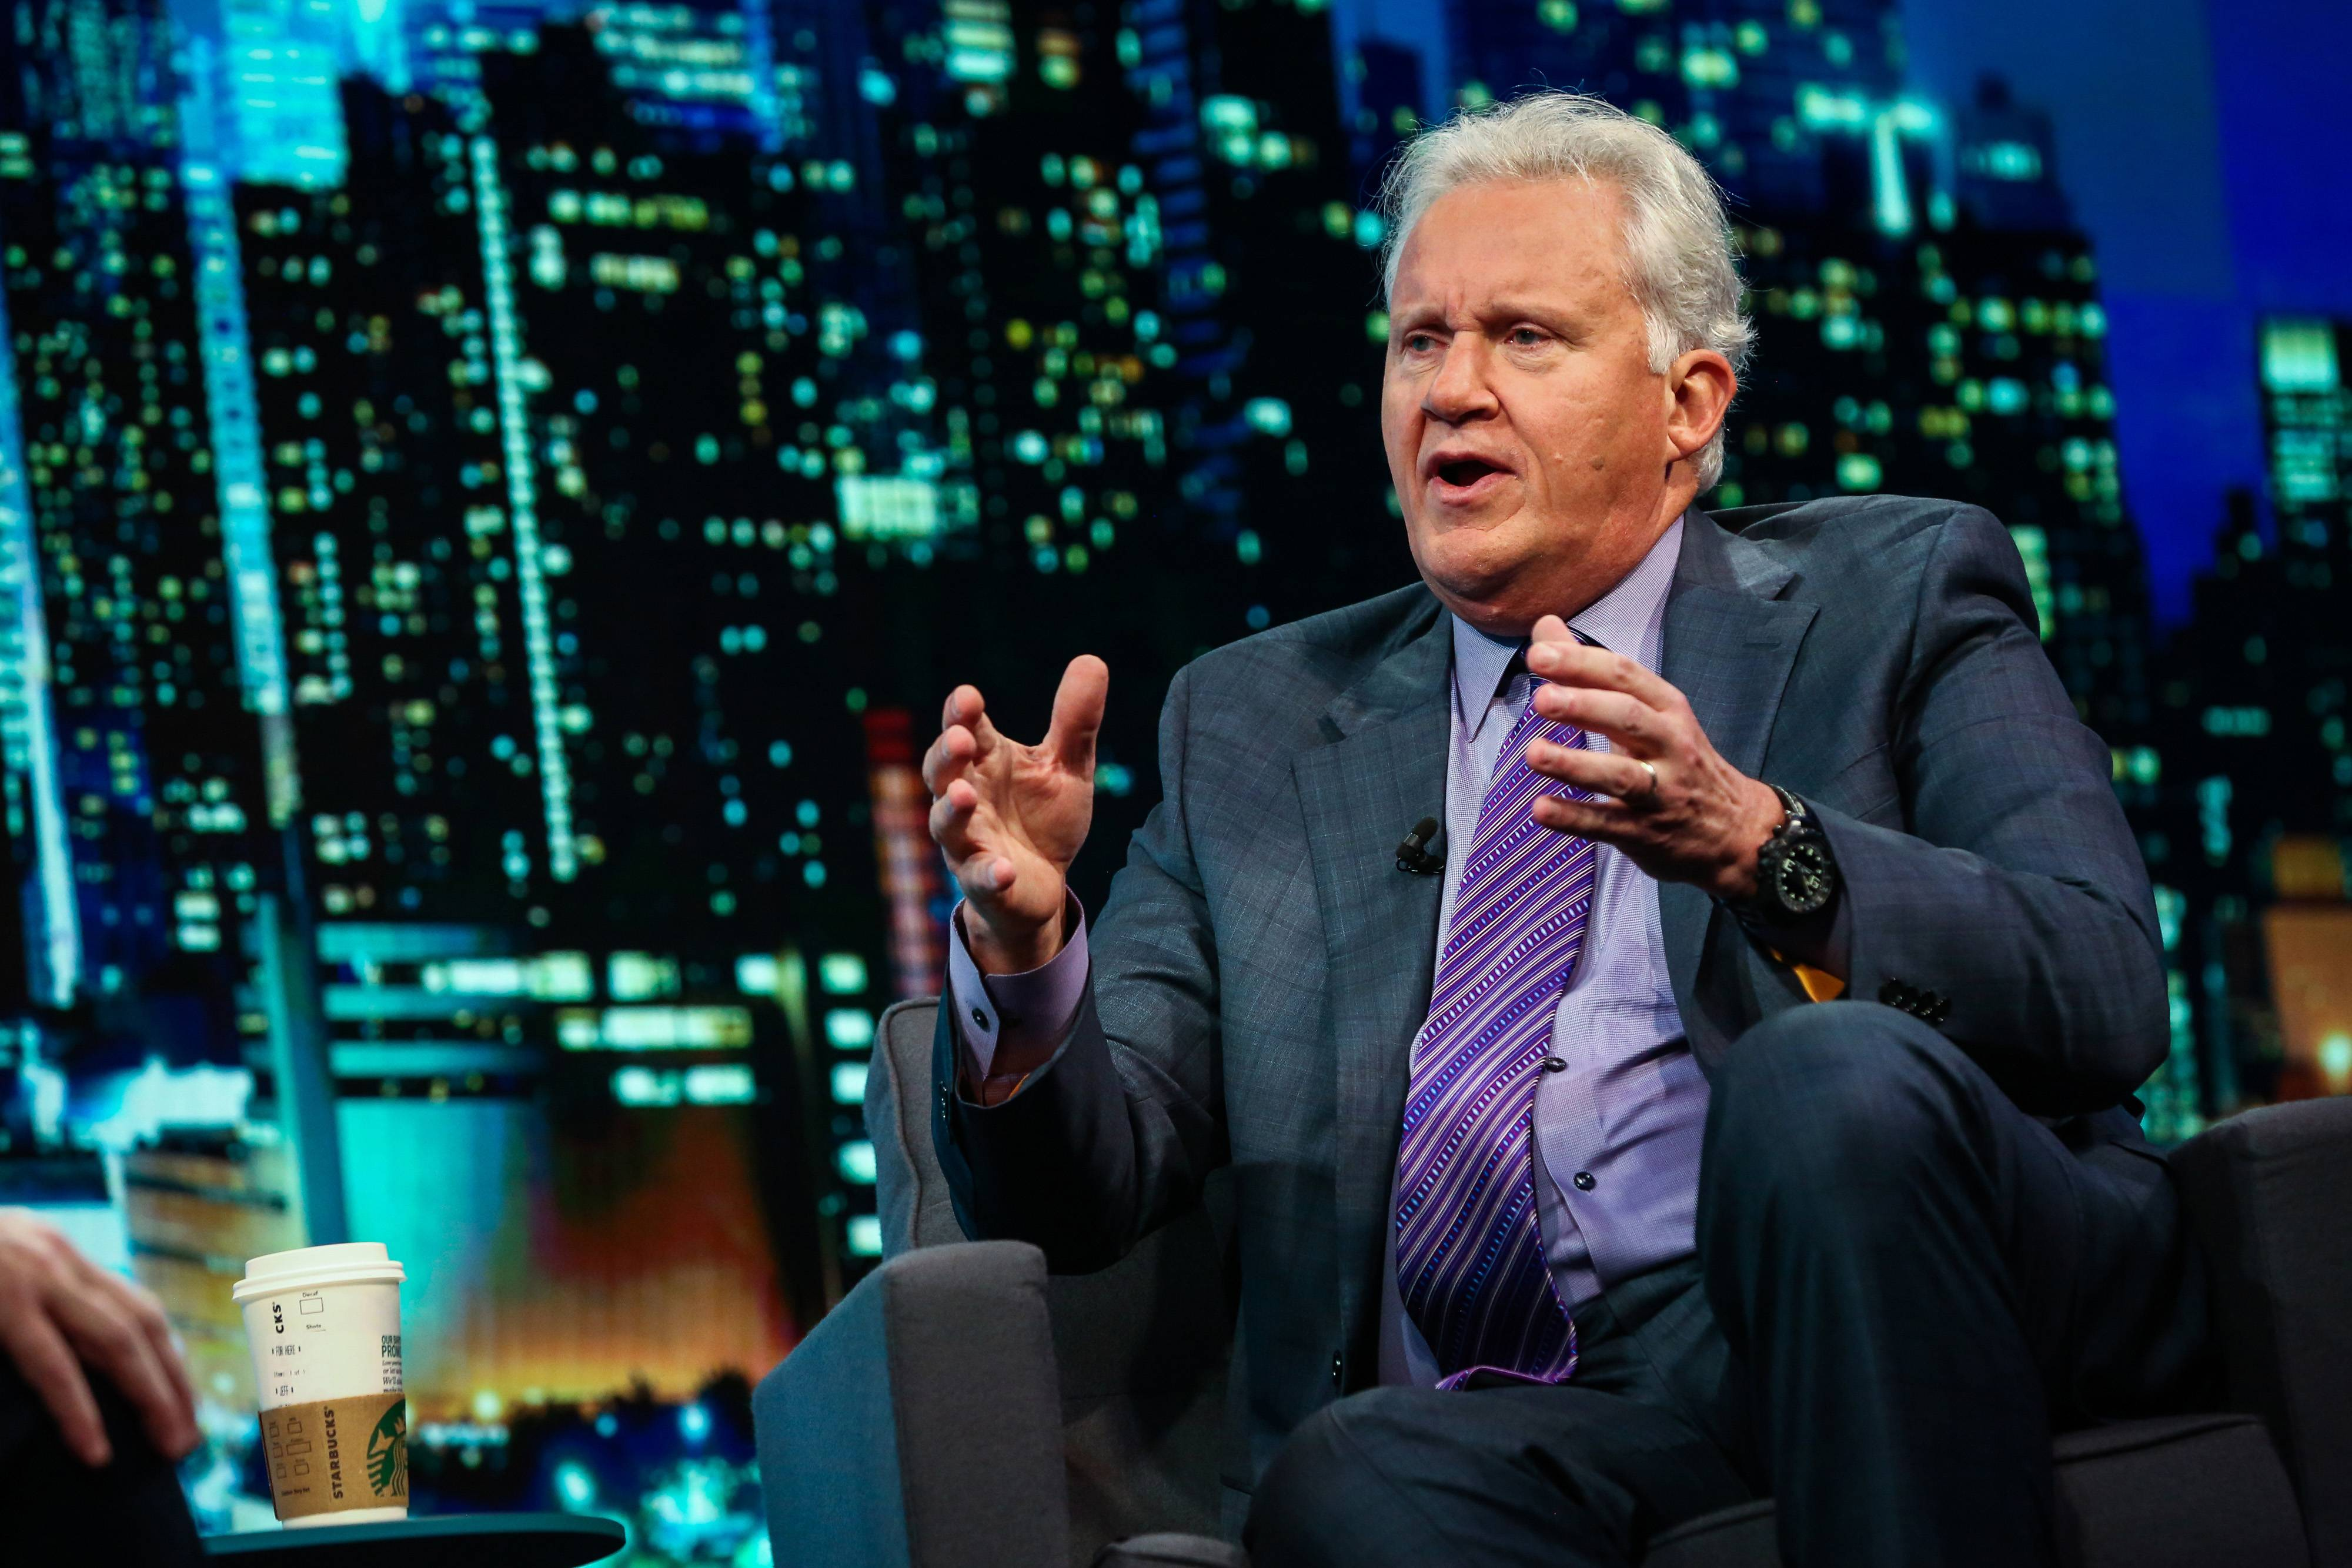 Jeff Immelt, former chairman of General Electric, speaks during an interview on the David Rubenstein Show in New York, on Sept. 29, 2017.